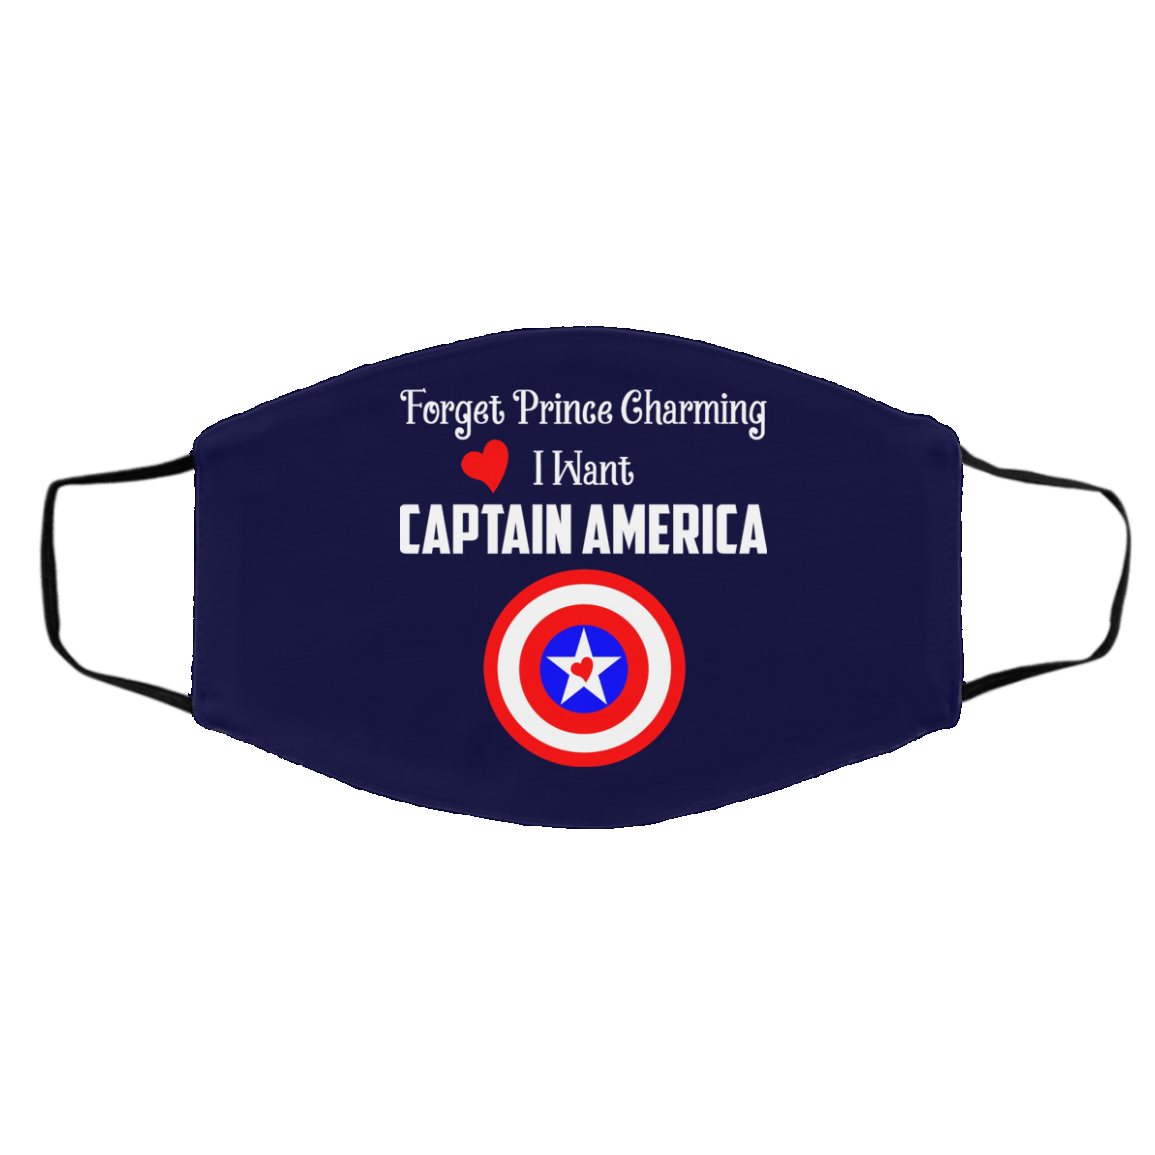 Forget Prince Charming I Want Captain America Face Mask 1274-13182-89726794-59070 - Tee Ript